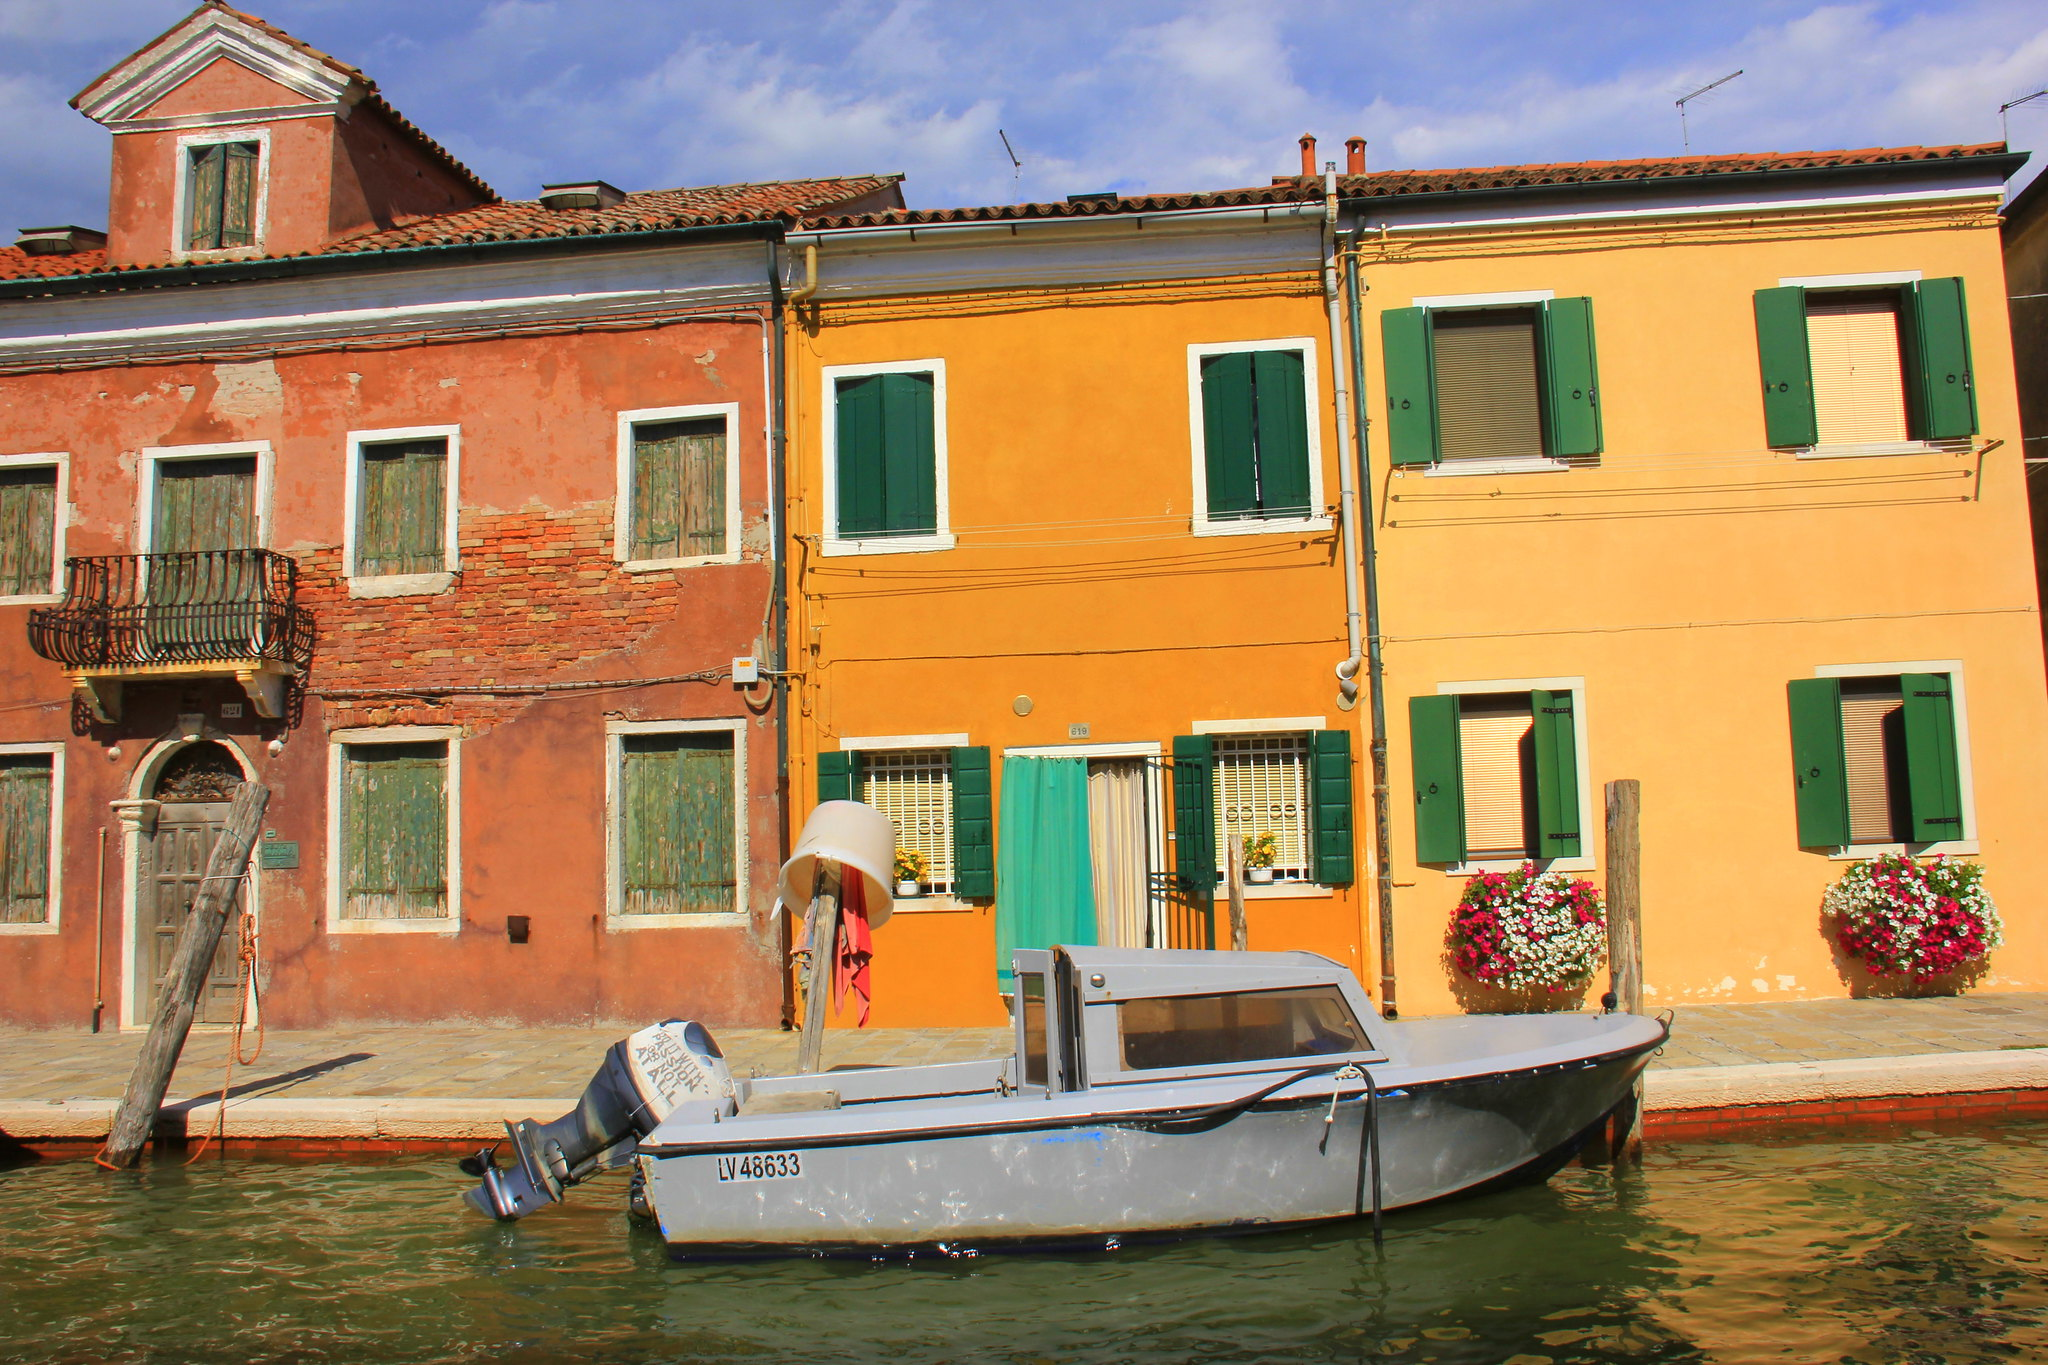 The beautiful Burano island